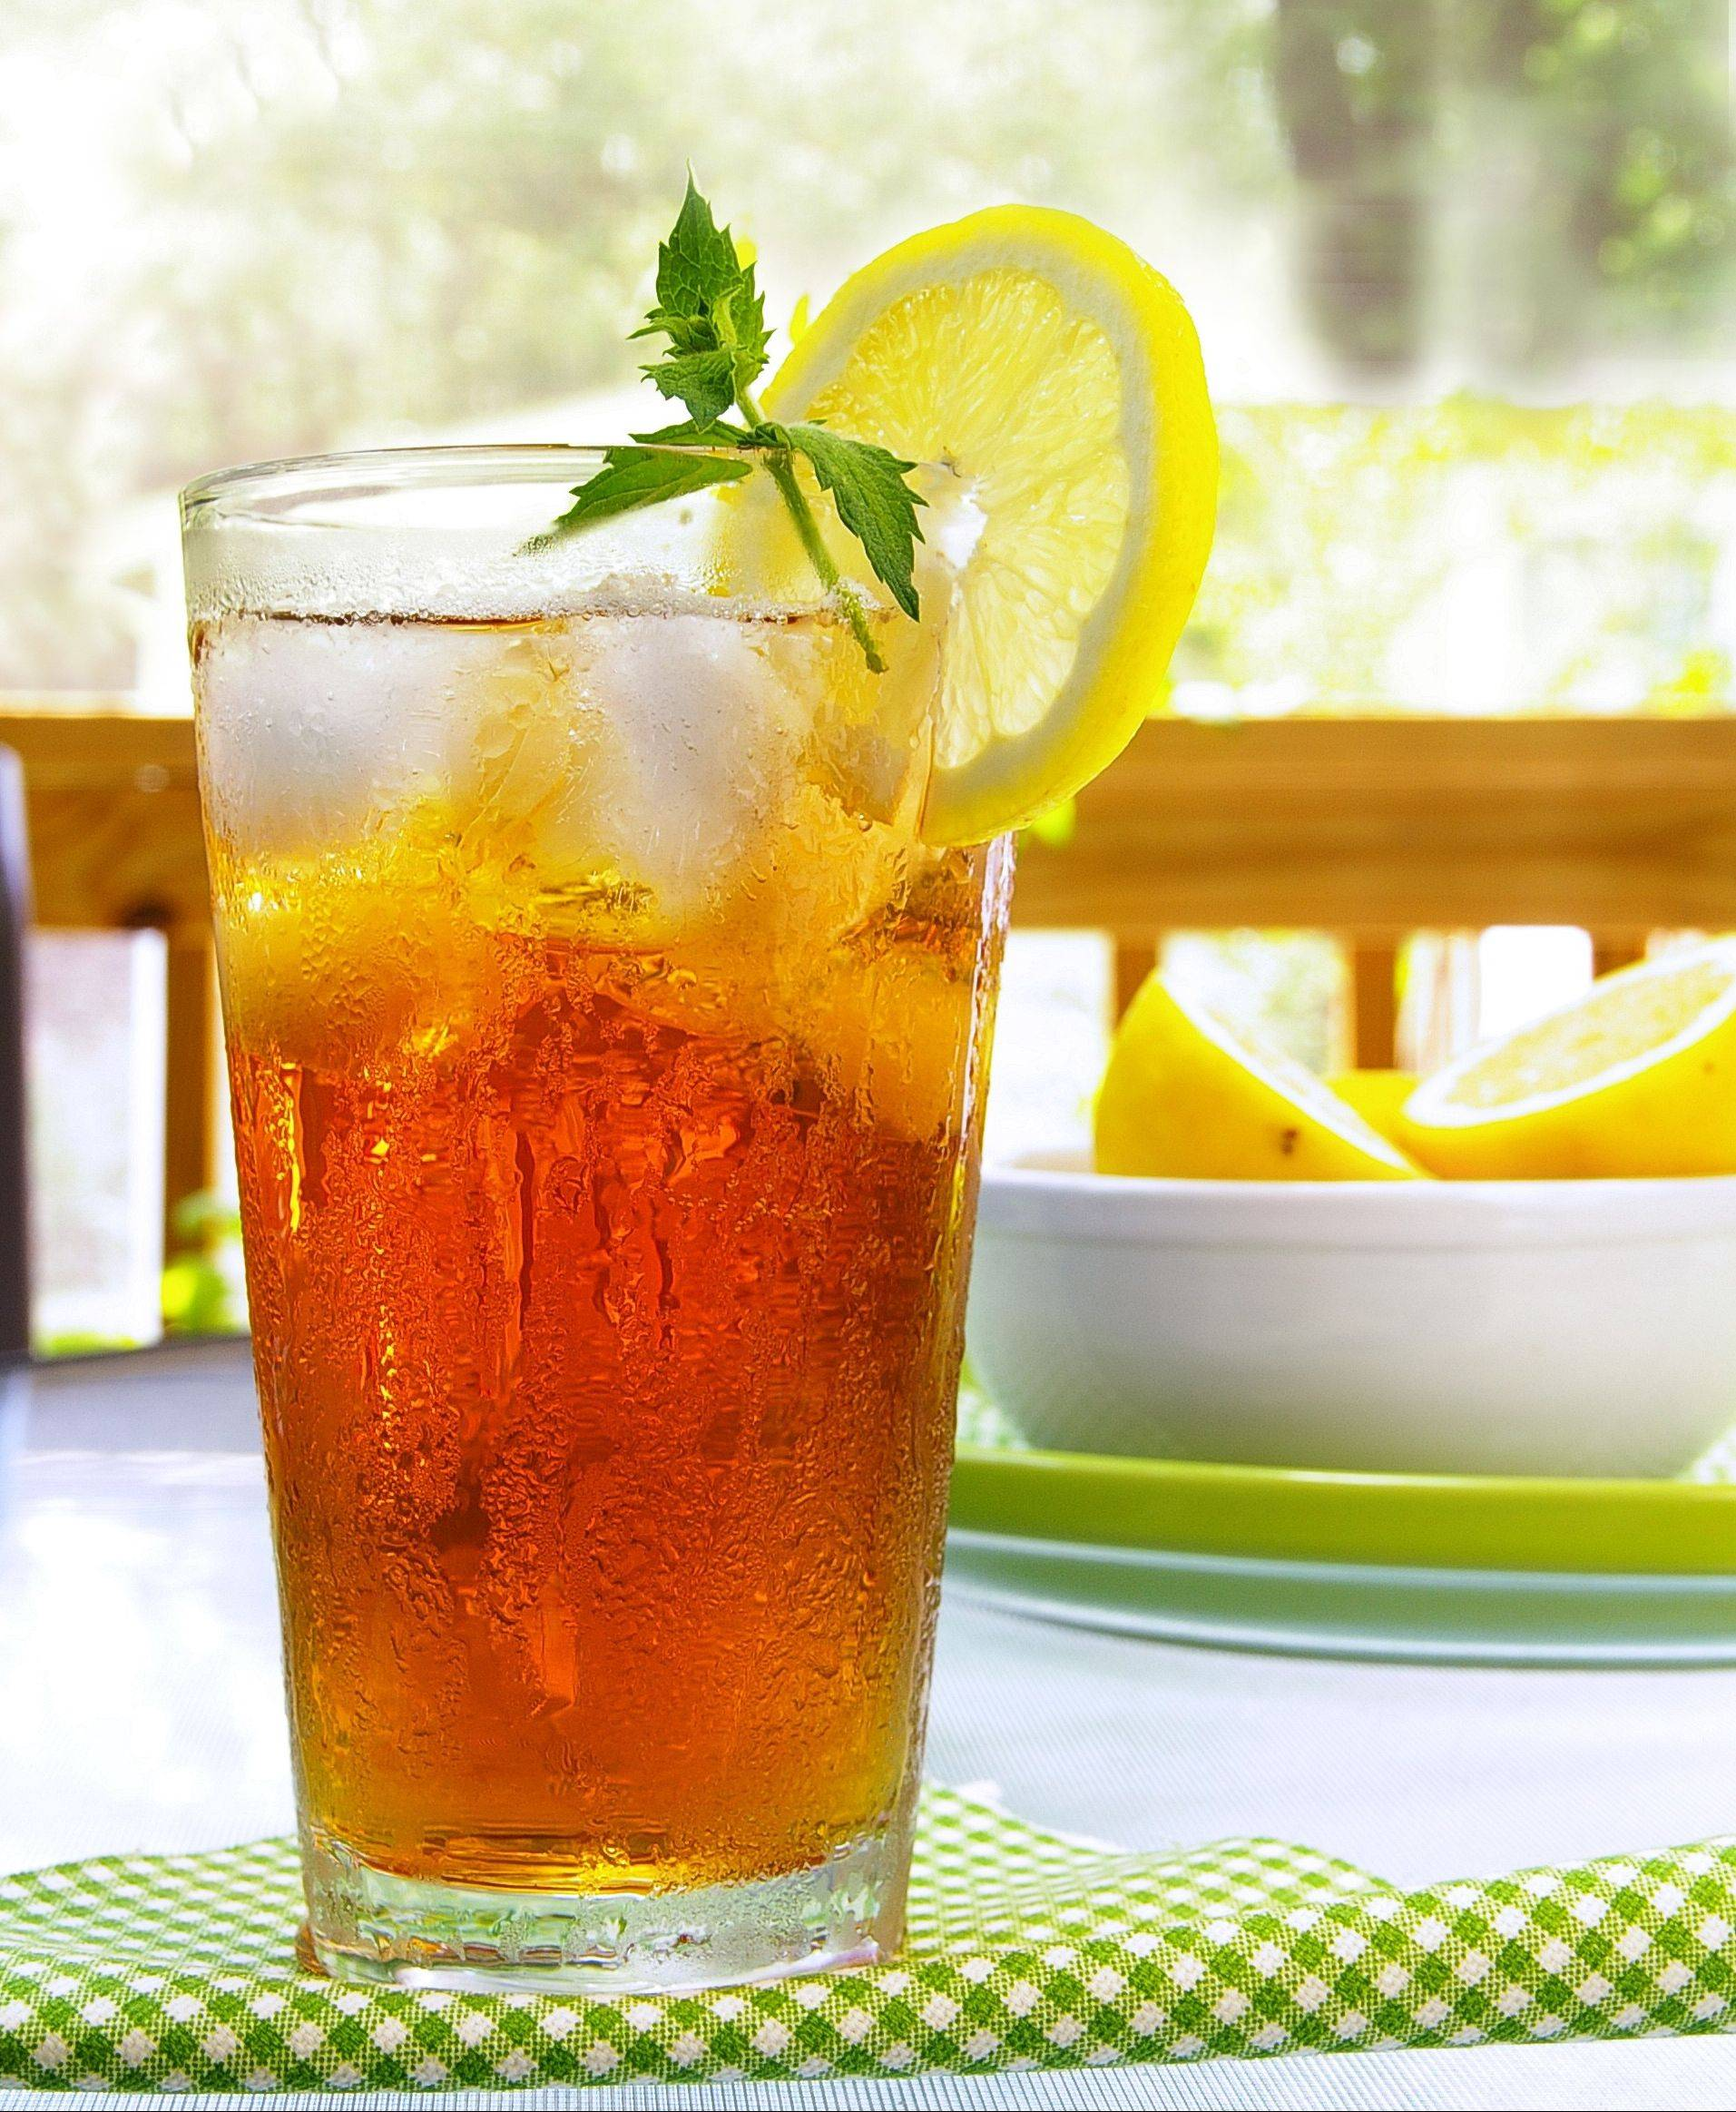 Drinking too much iced tea may increase your risk of developing kidney stones.